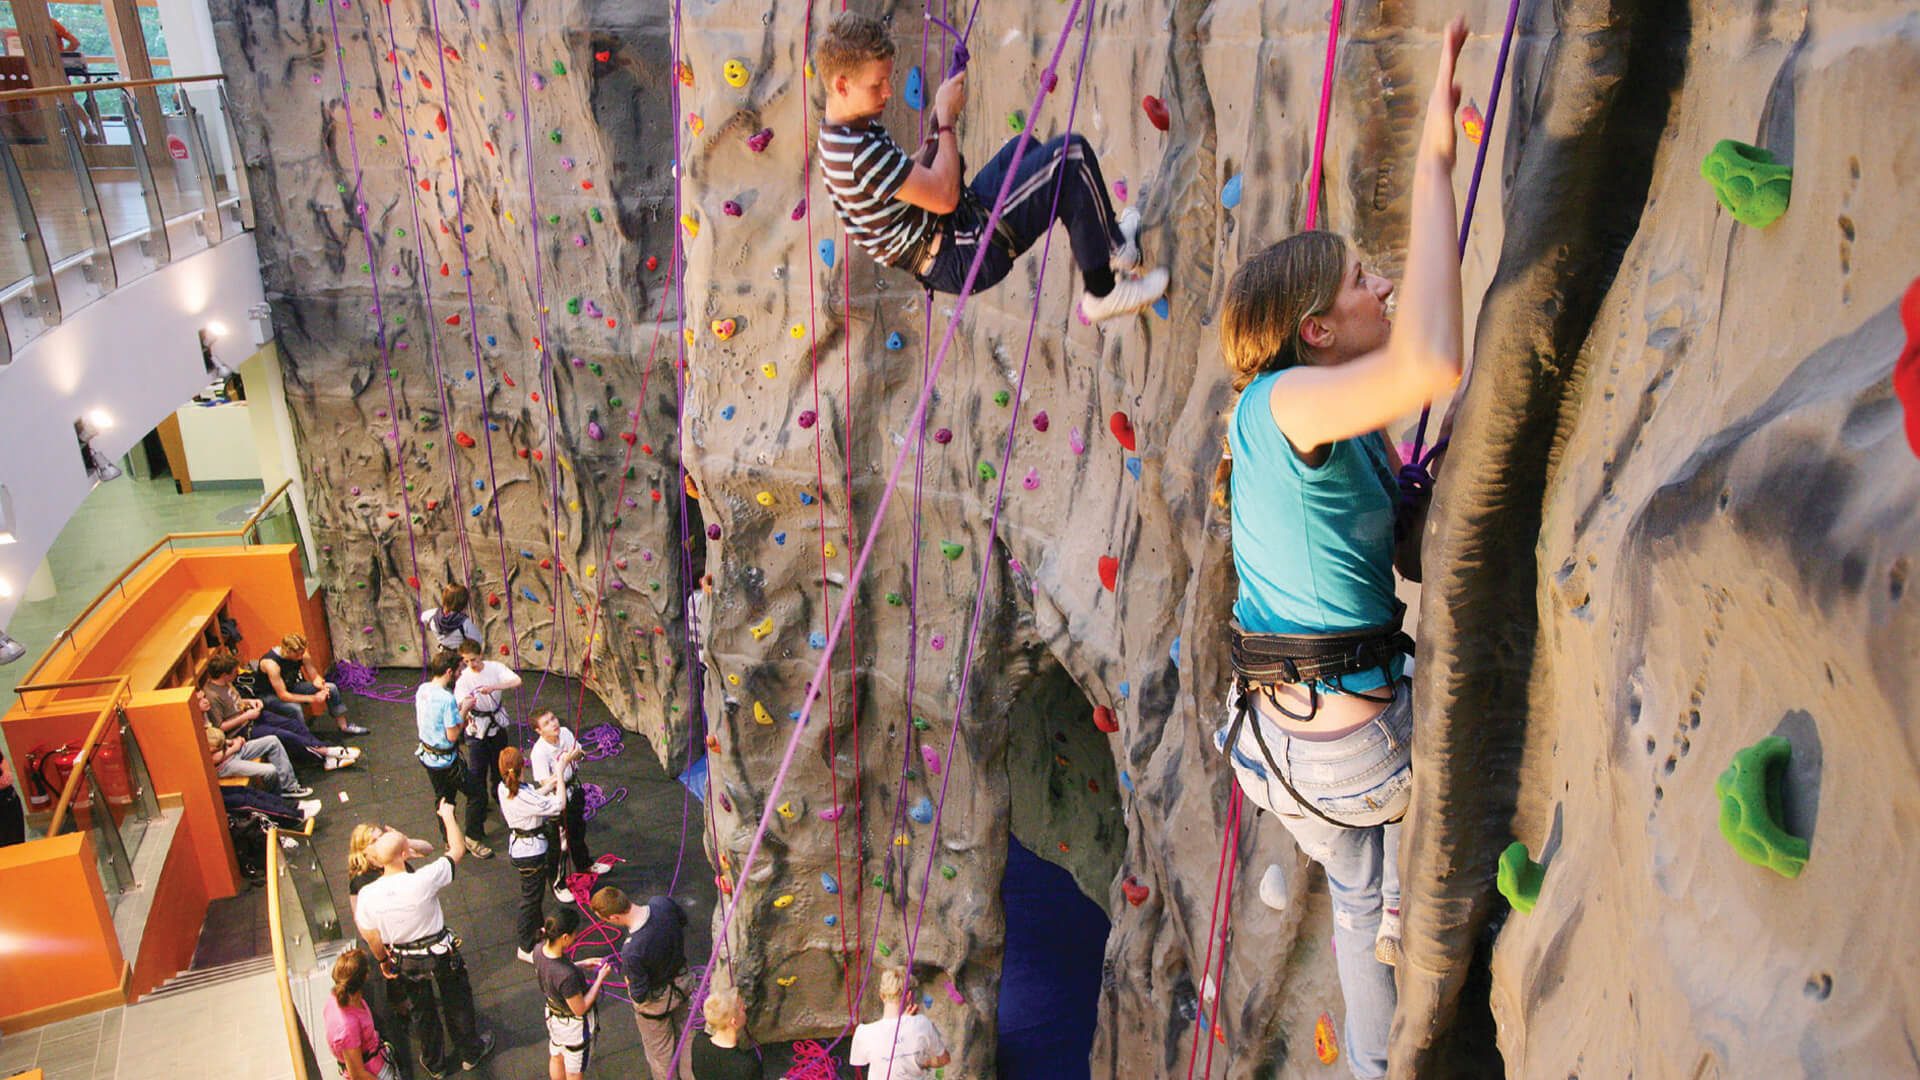 Students using the on-campus climbing wall at Queen's University Belfast